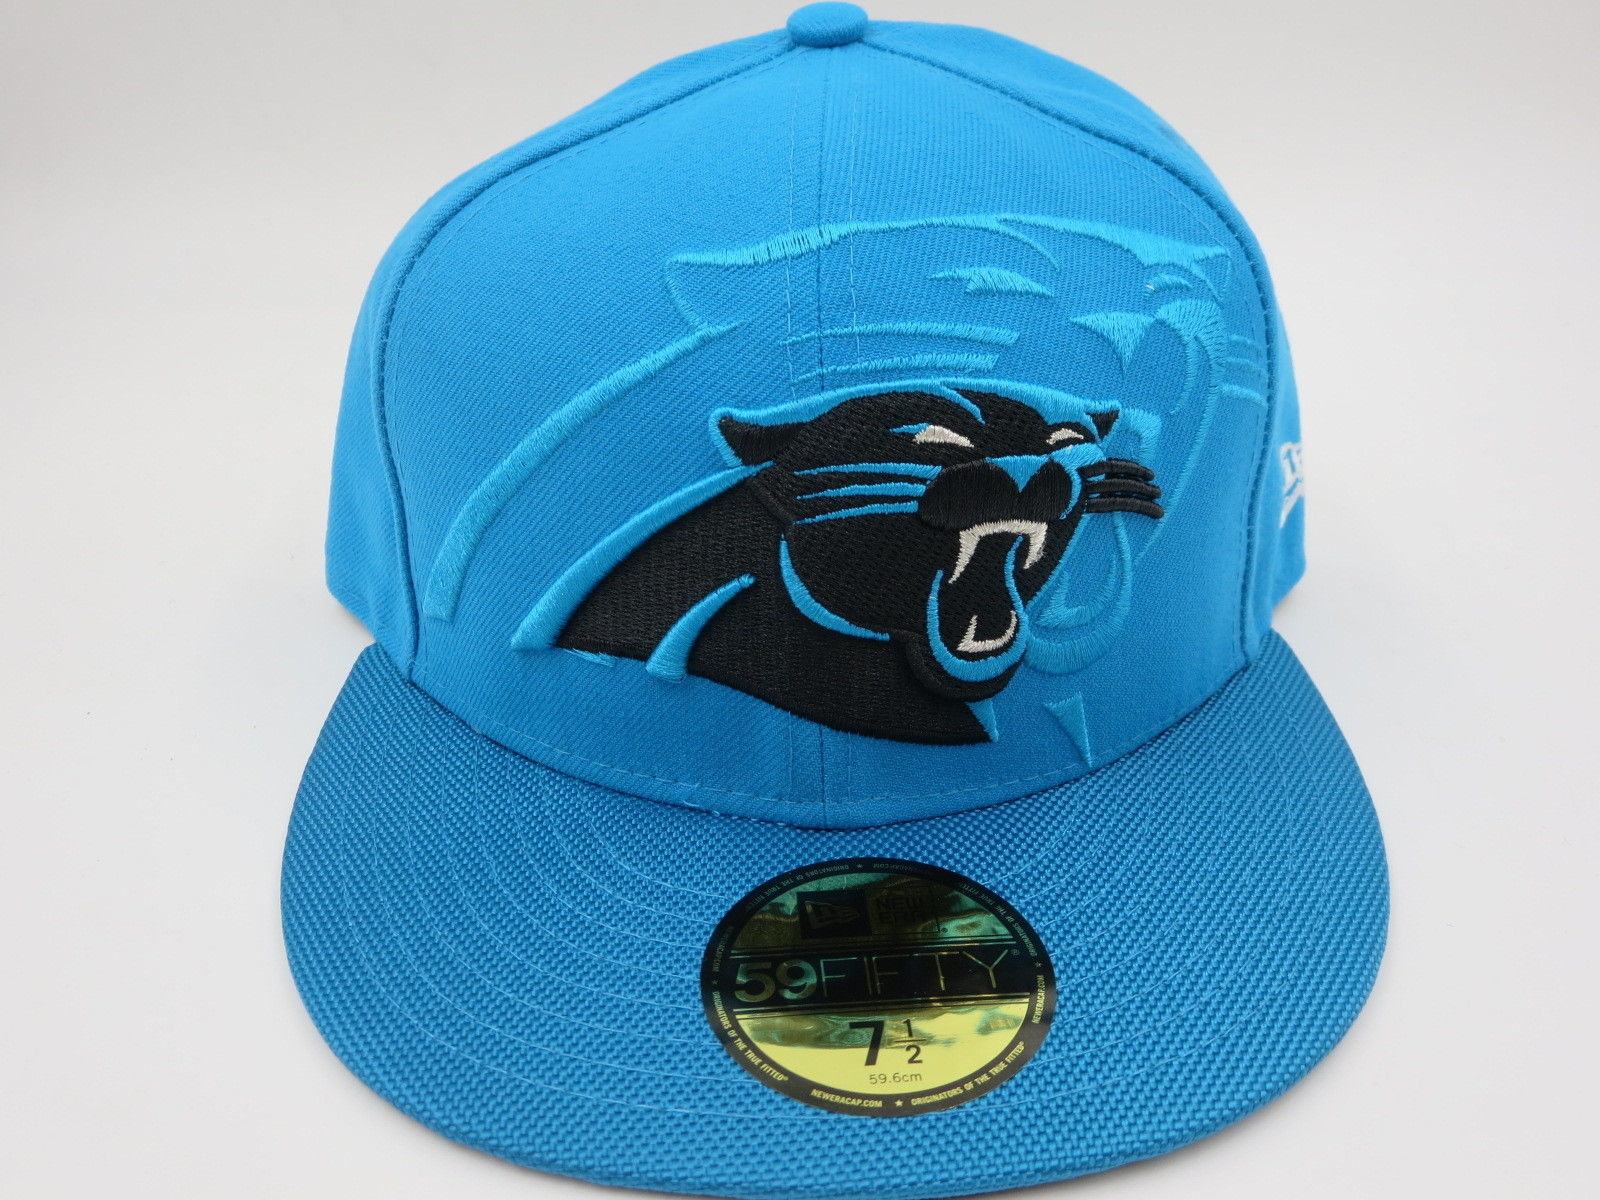 15cb5e5b5f6bd S l1600. S l1600. Previous. Carolina Panthers Blue New Era NFL 2016  Sideline 59FIFTY Fitted Hat Cap